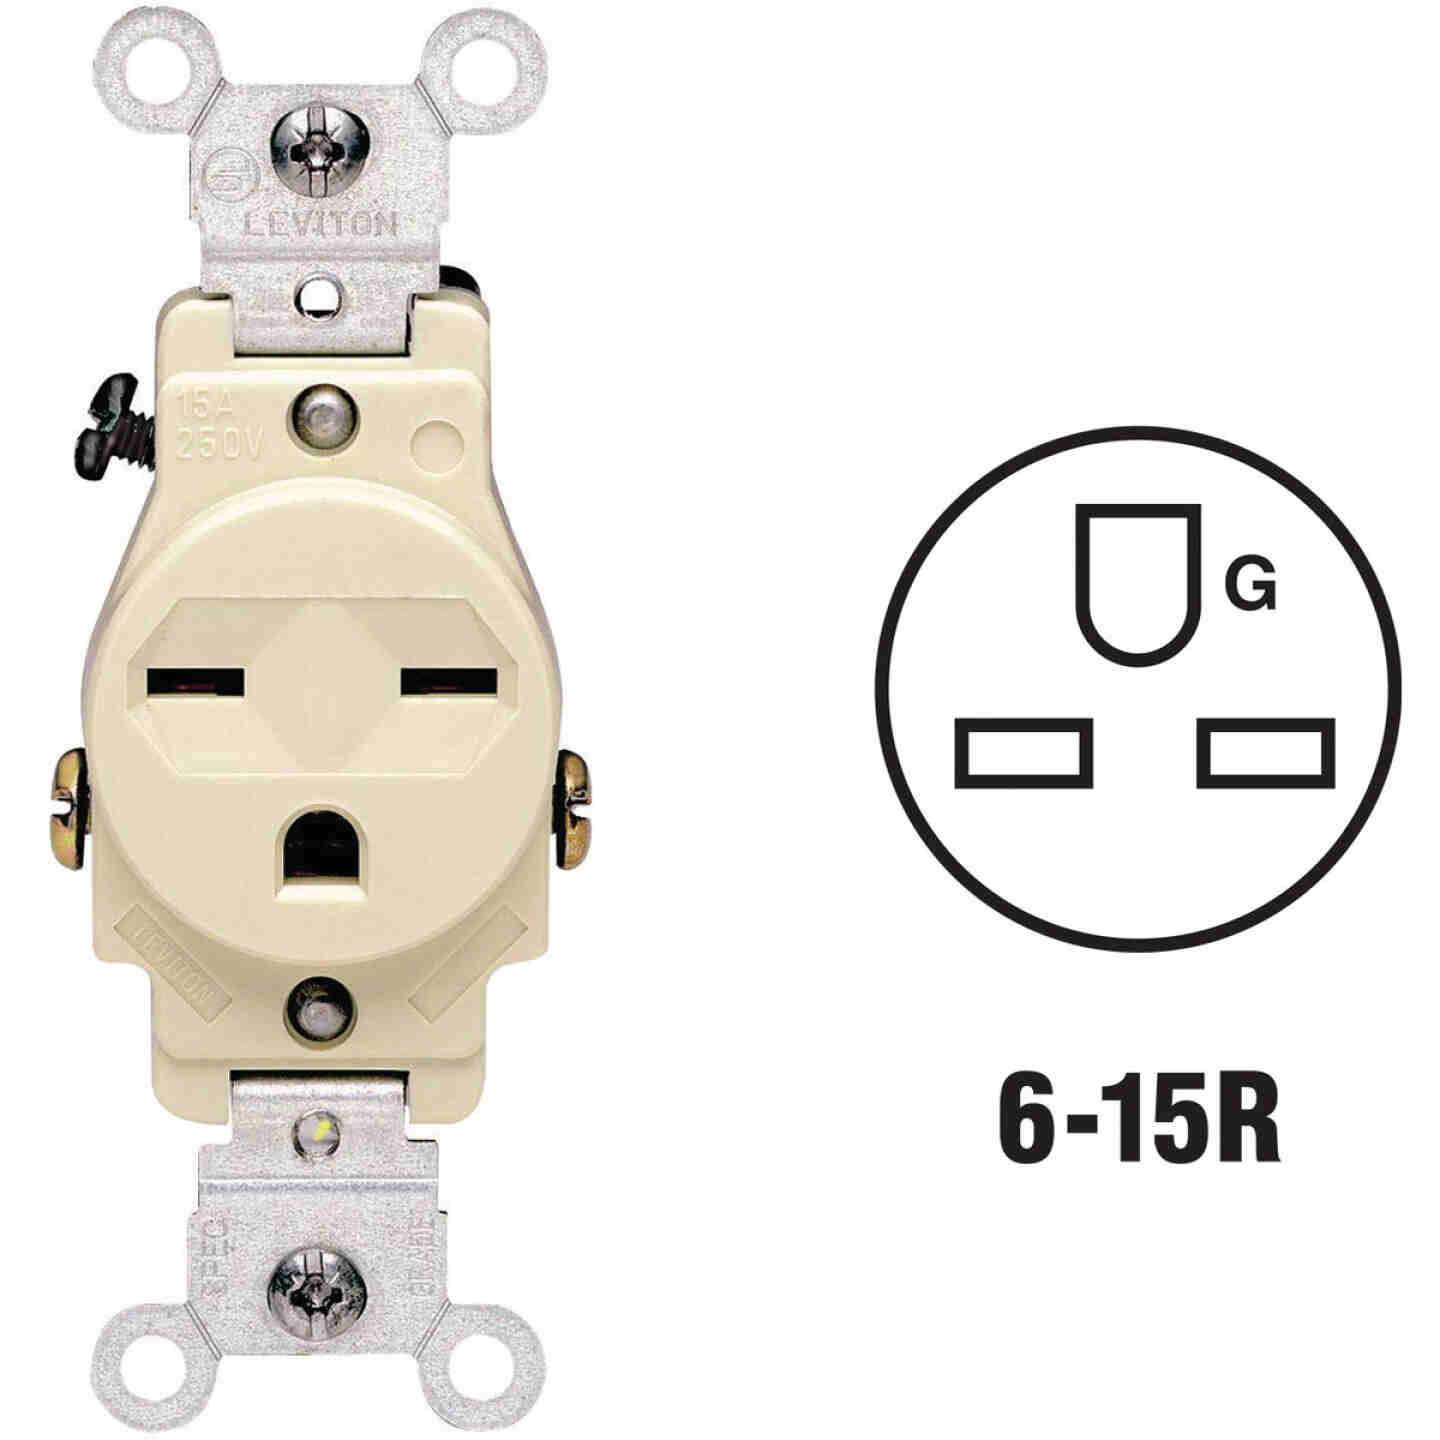 Leviton 15A Ivory Heavy-Duty 6-15R Grounding Single Outlet Image 1